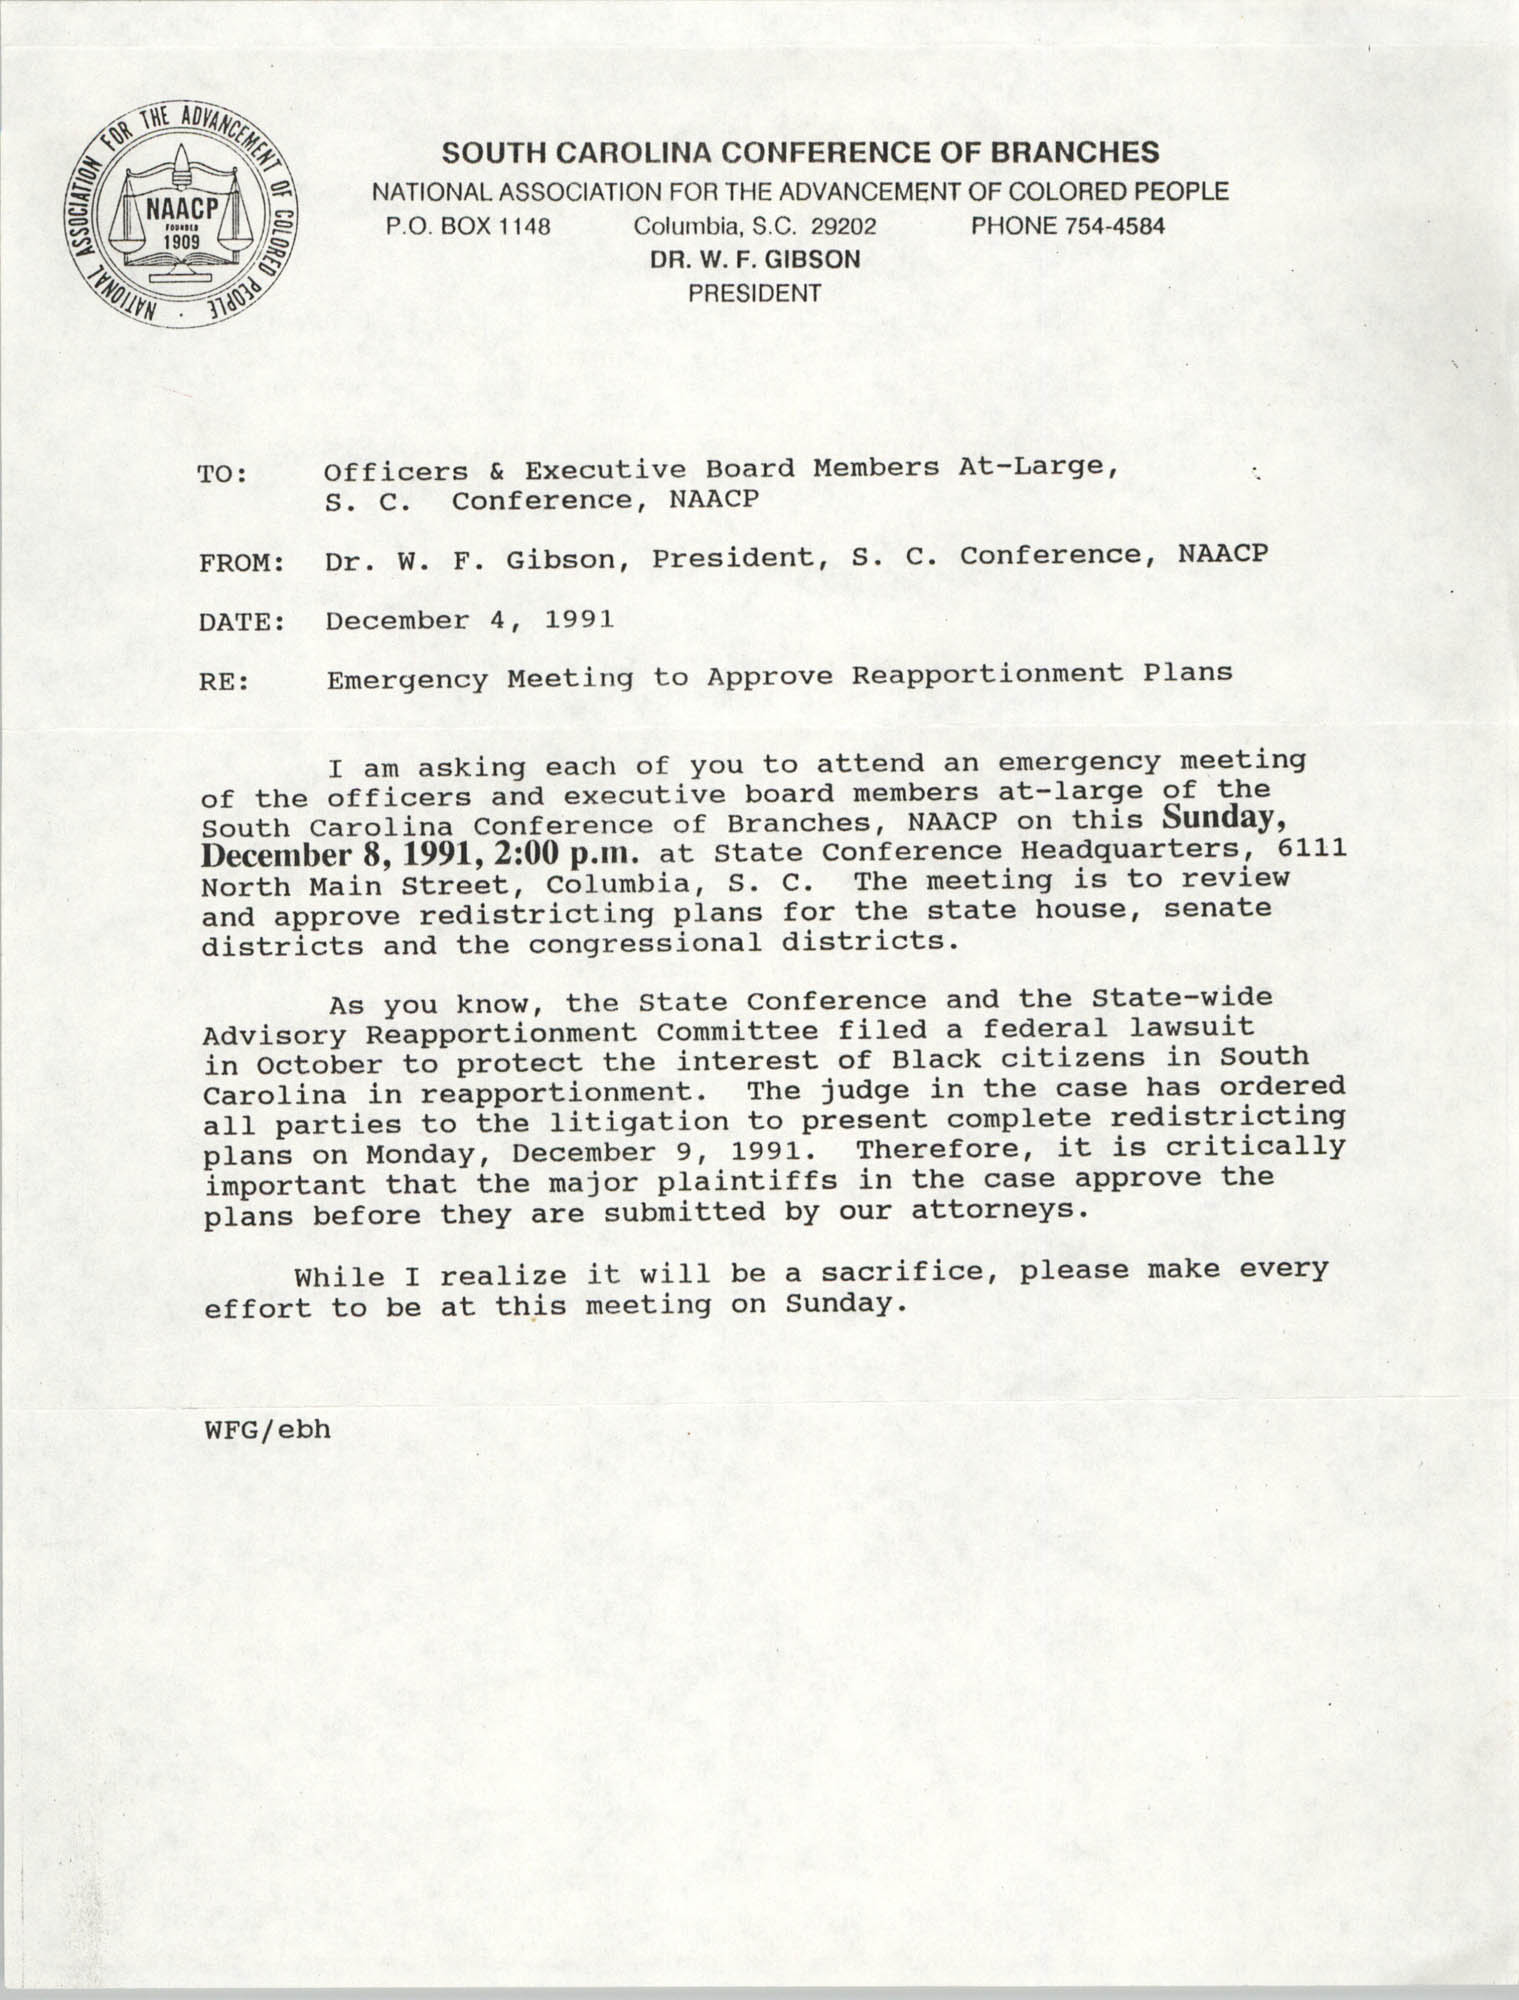 South Carolina Conference of Branches of the NAACP Memorandum, December 4, 1991